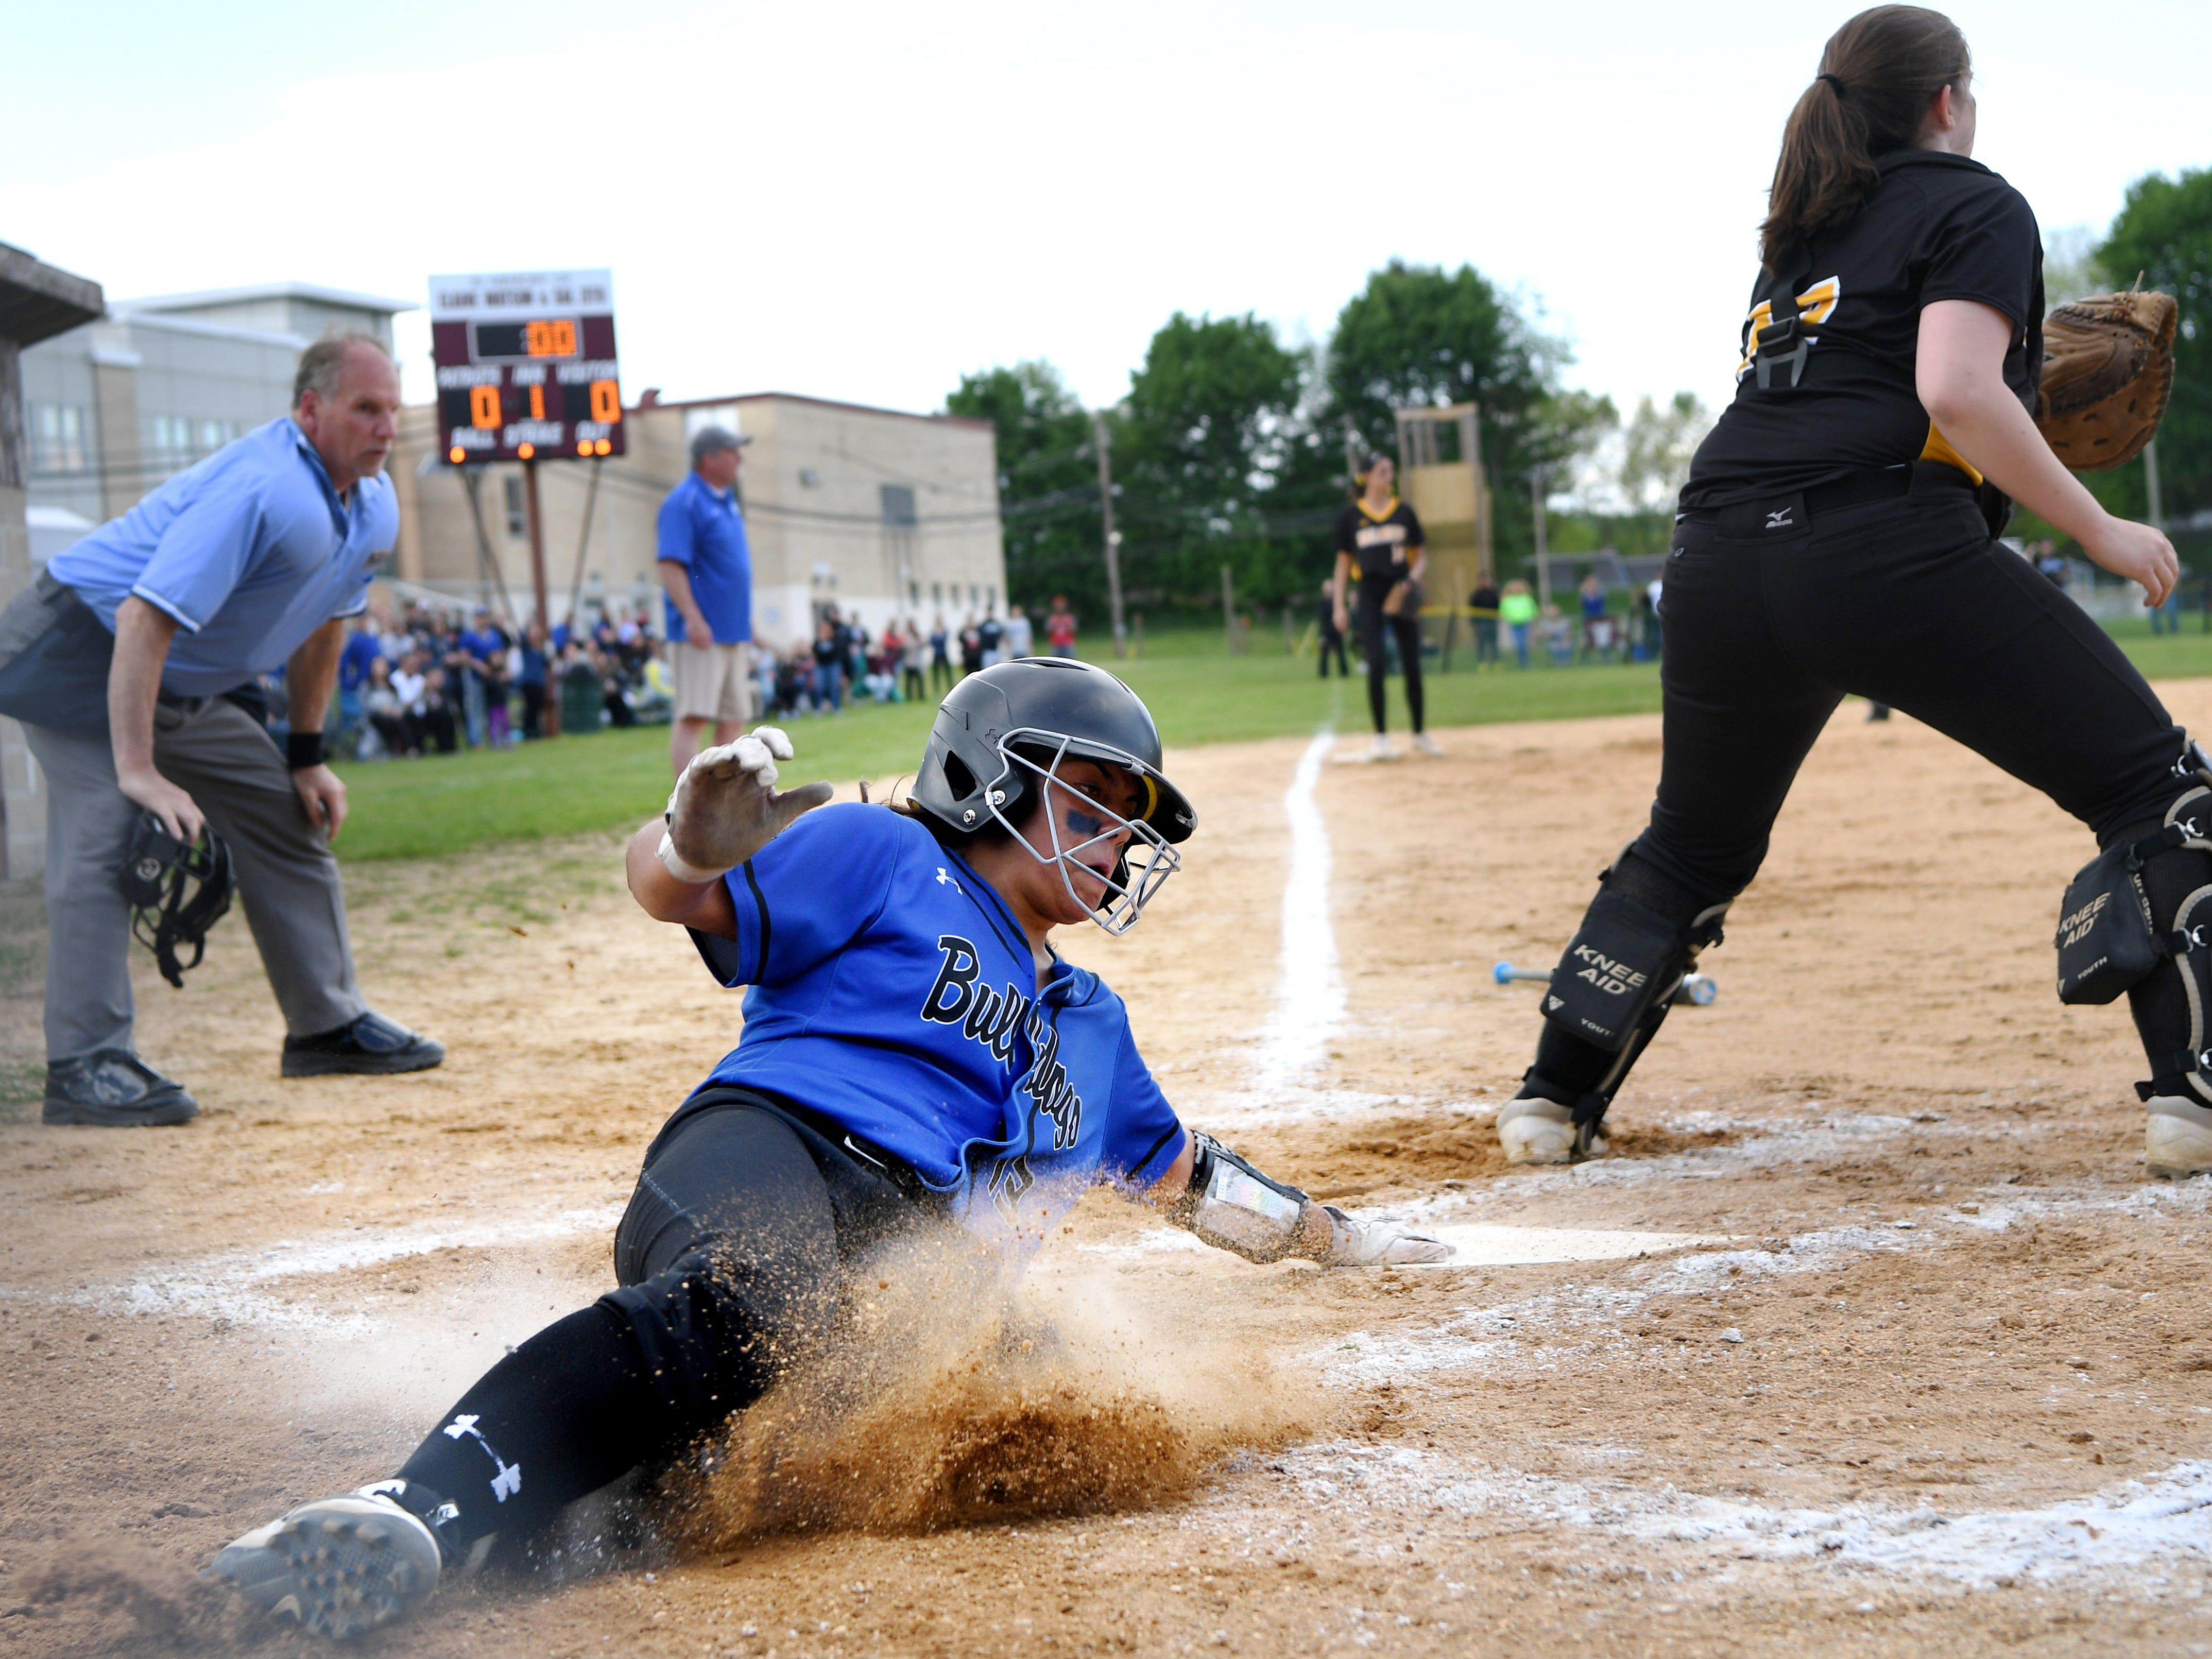 Passaic County Technical Institute vs. West Milford in the Passaic County Tournament softball final at Wayne Hills High School on Wednesday, May 15, 2019. PCTI #13 Daniela Vidal slides and is safe at home.